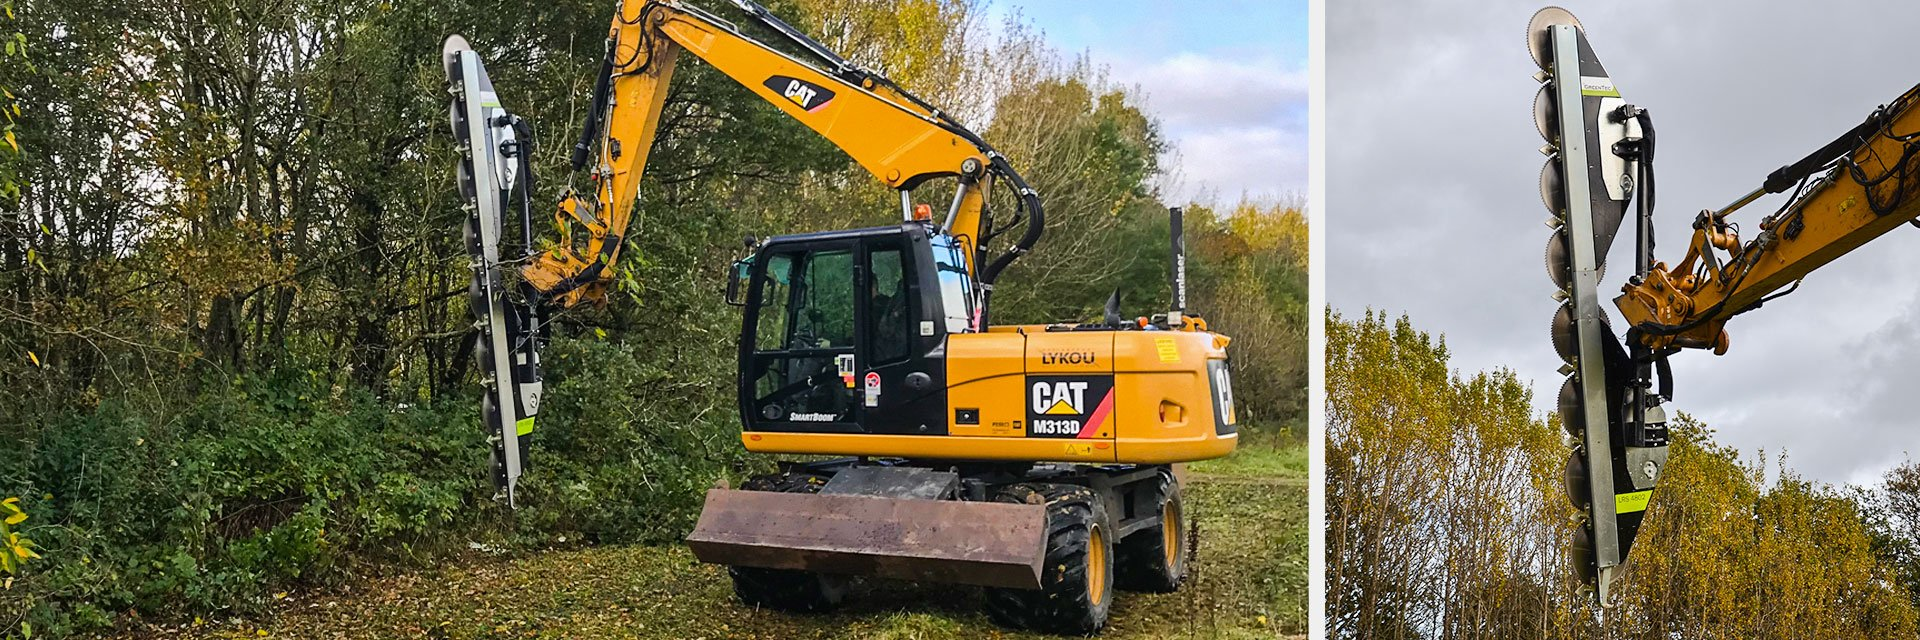 Huge capacity and efficiency for hedge cutting